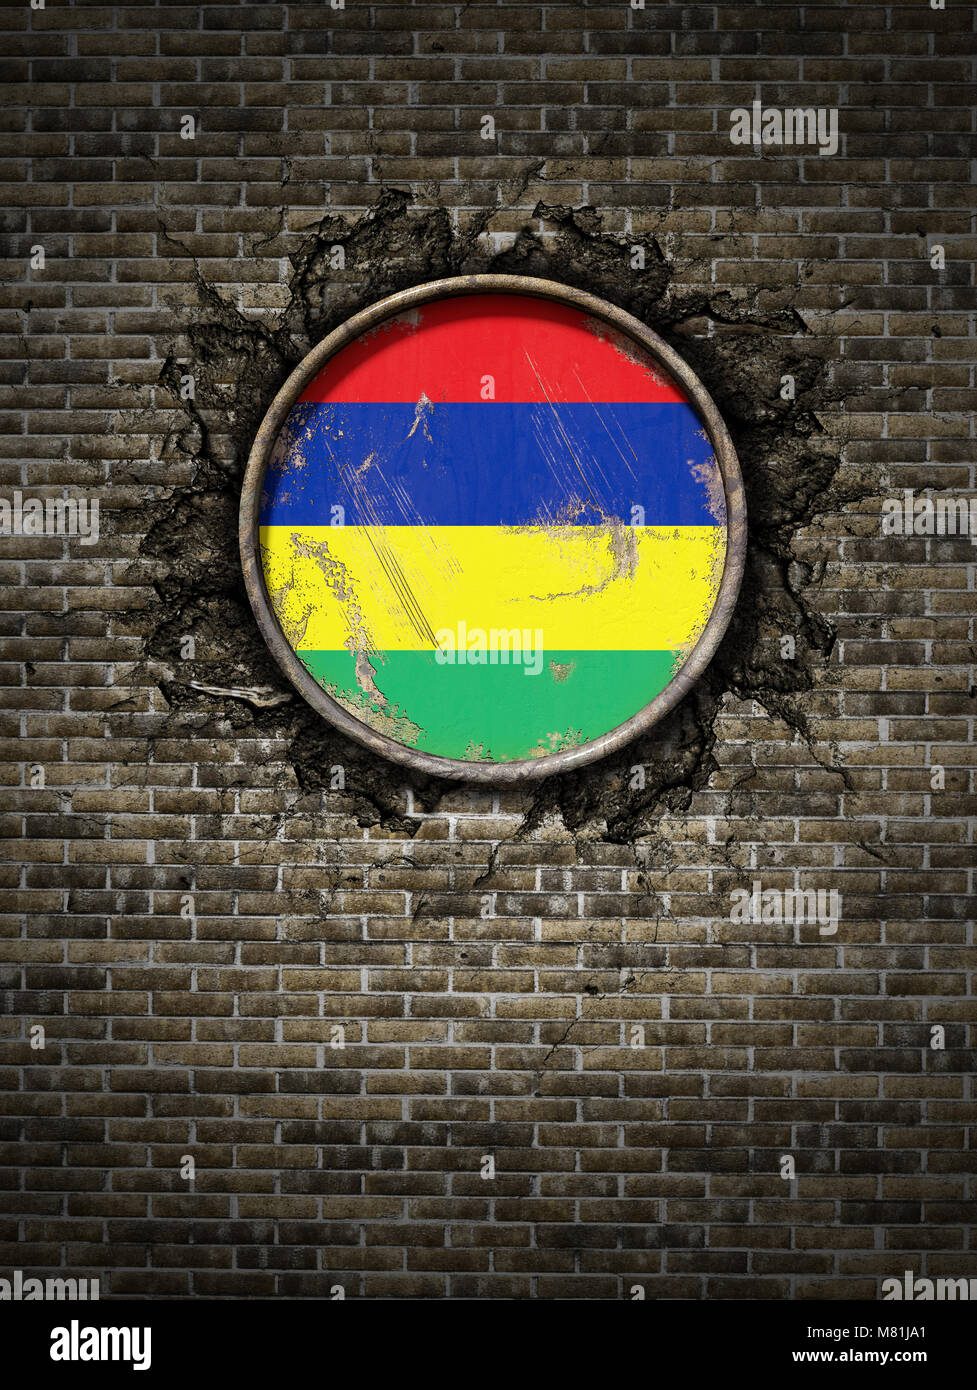 3d rendering of a Republic of Mauritius flag over a rusty metallic plate embedded on an old brick wall Stock Photo